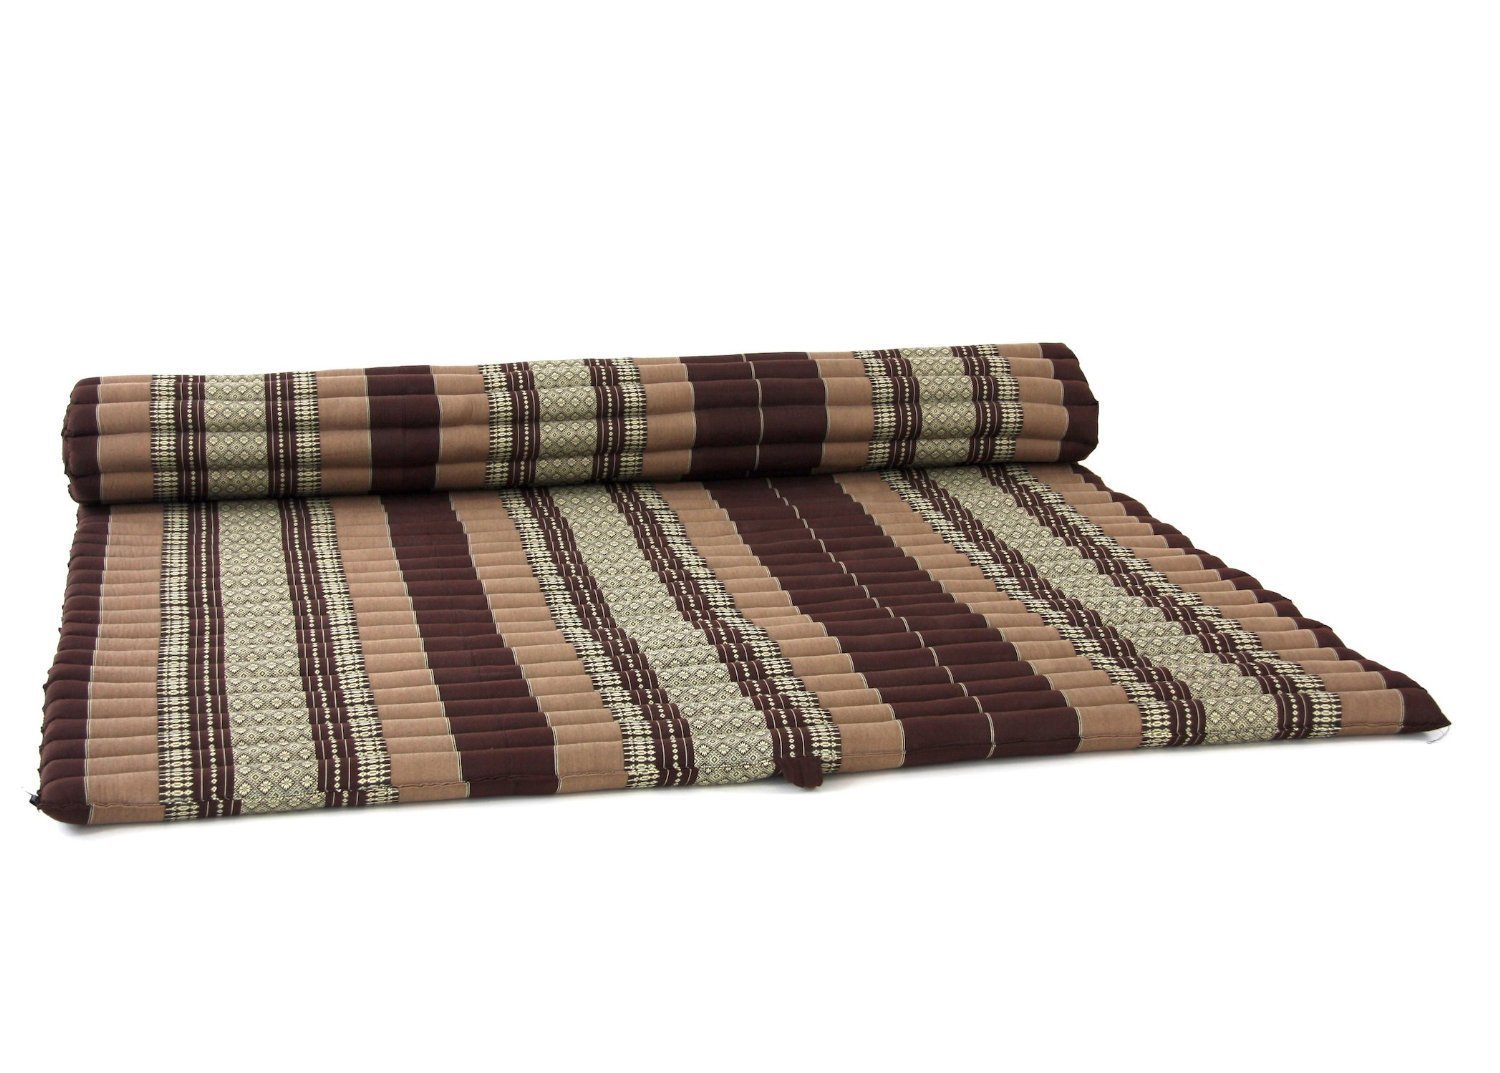 Design by UnseenThailand Roll Up Thai Mattress, Kapok Fabric, Premium Double Stitched, 79x63x2 inches. (Brown - Cream)